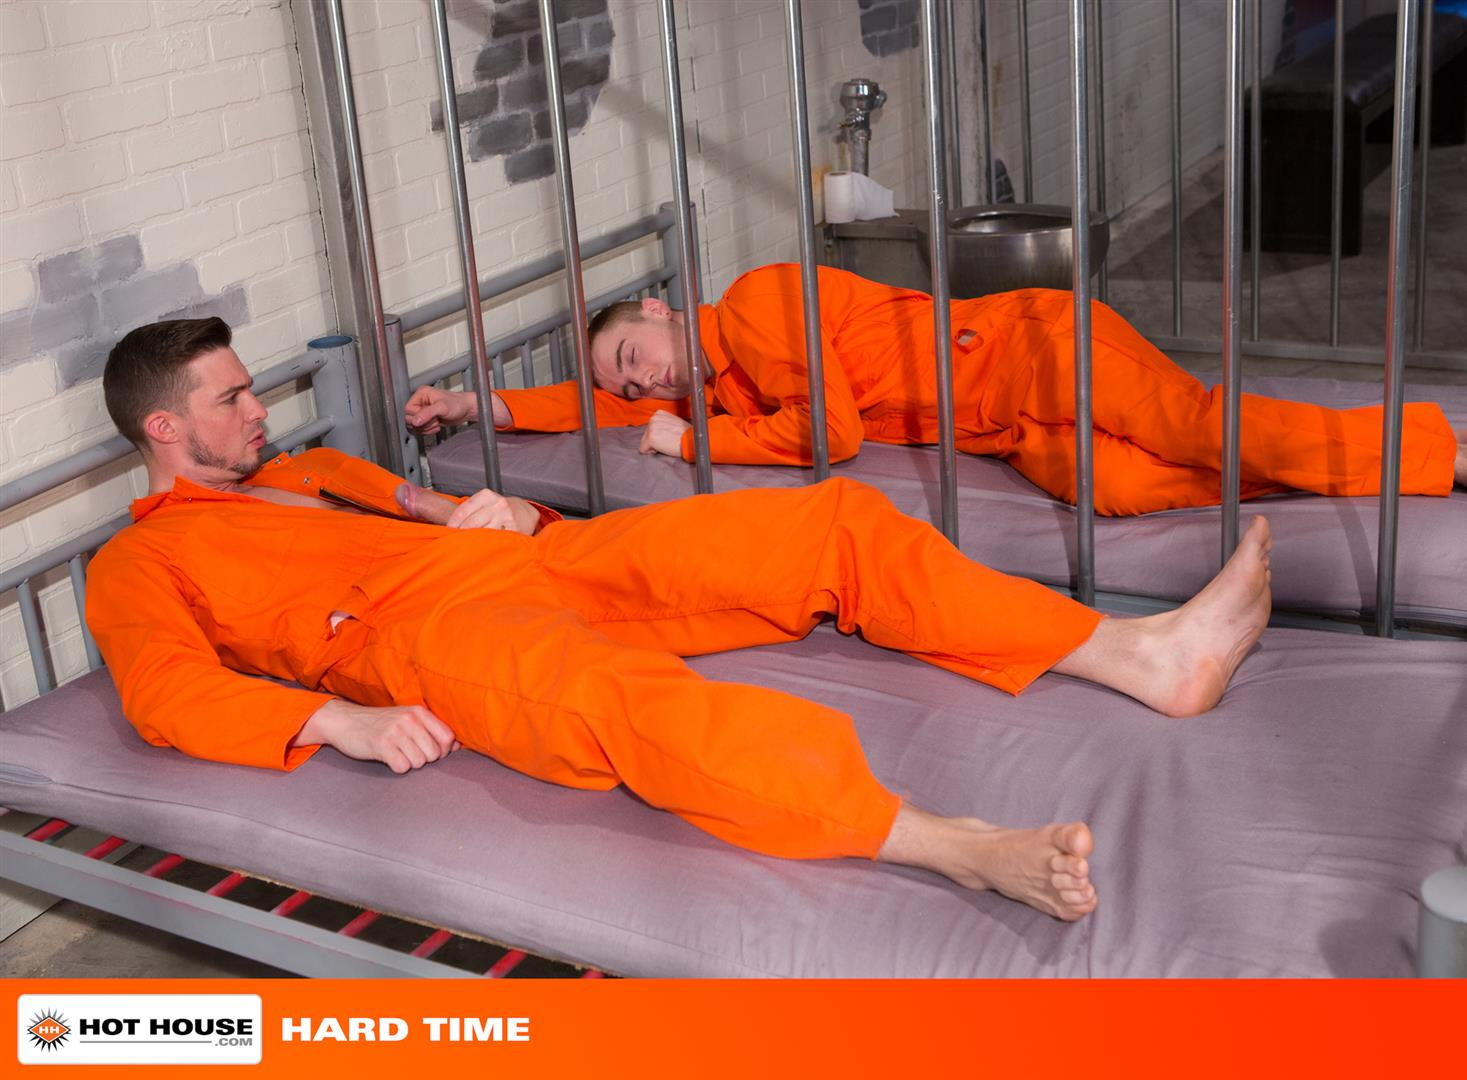 Hot-House-Hard-Time-Sam-Barclay-and-JP-Dubois-Guys-Fucking-in-Prison-Big-Uncut-Cocks-Amateur-Gay-Porn-01 JP Dubois Takes A Hard Uncut Cock Up His Ass During Lockup At The County Jail